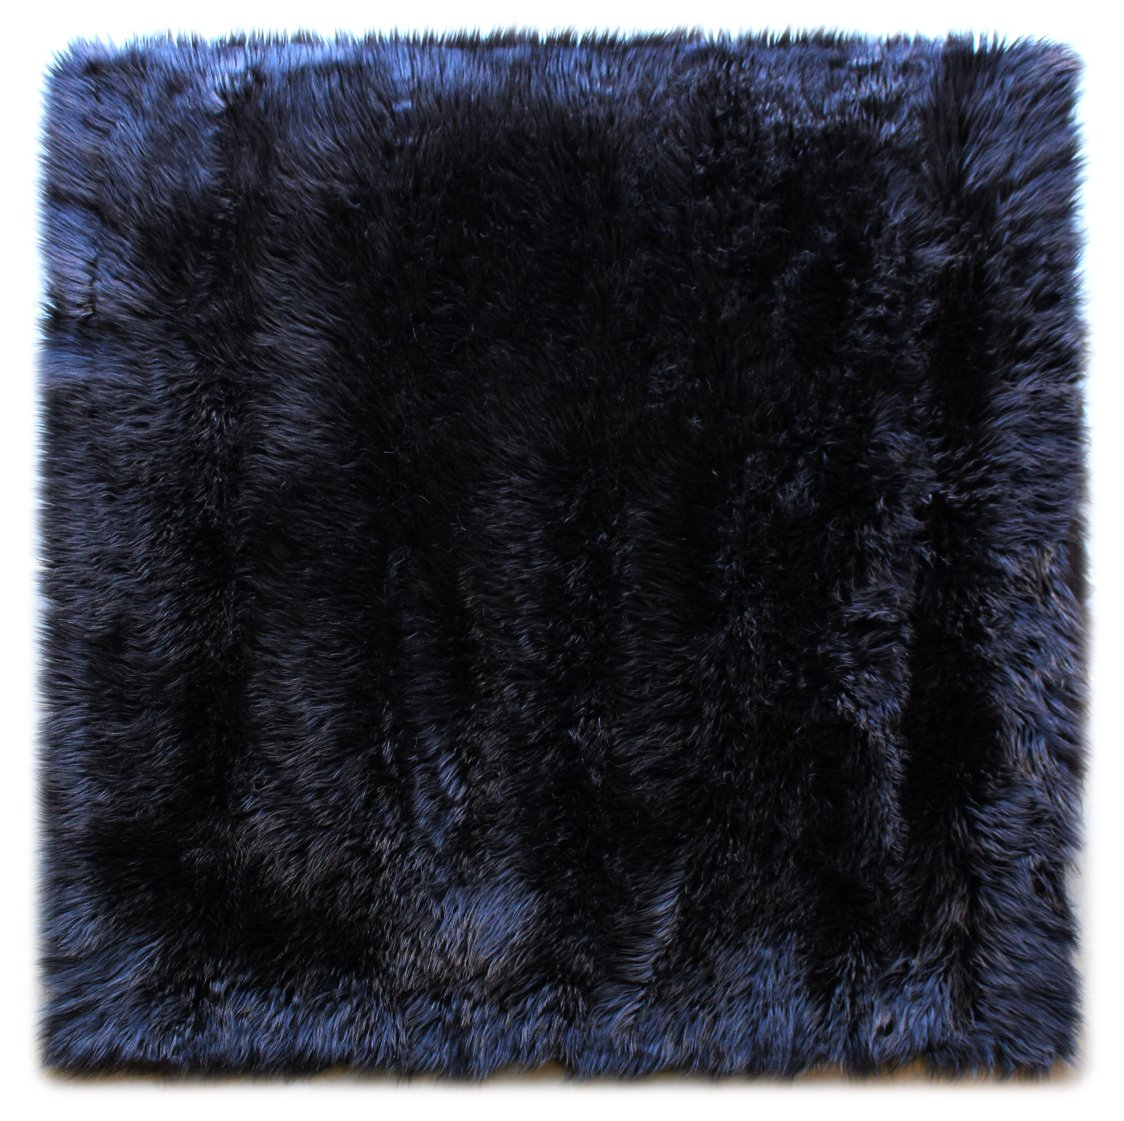 Masada Rugs, Faux Sheep Fur Shag Area Rug Mat (2 Feet x 3 Feet) Beige